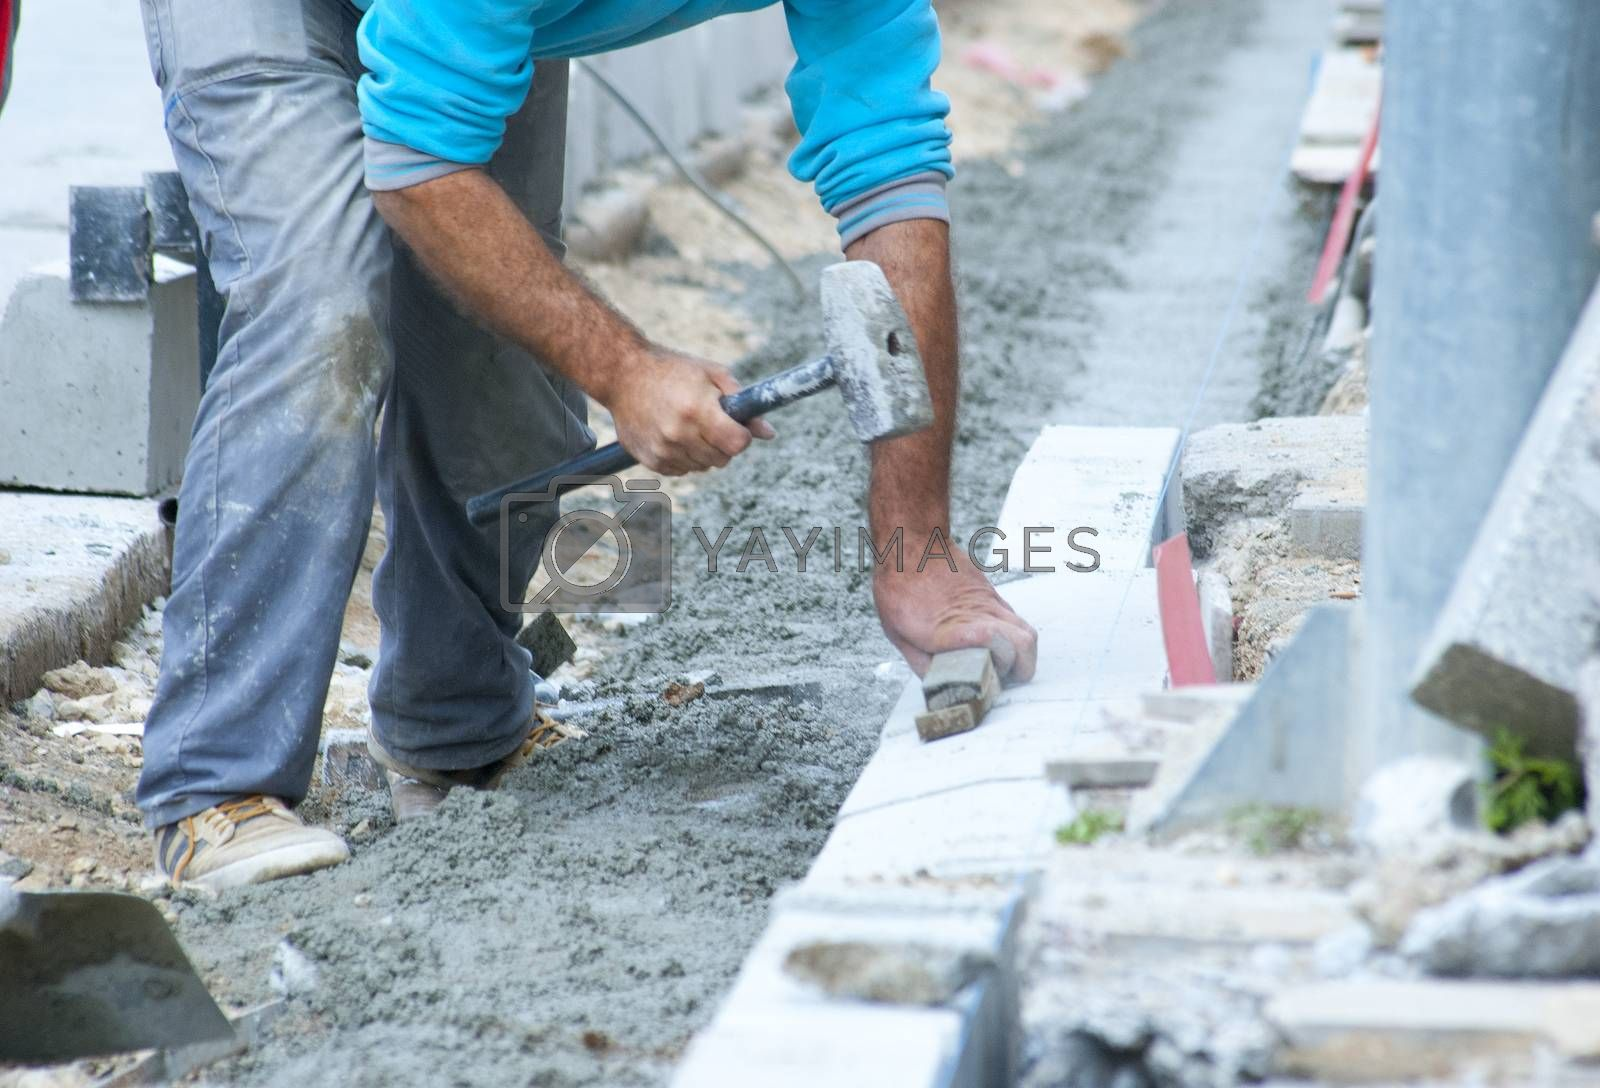 municipal work, reconstruction of a street road, image